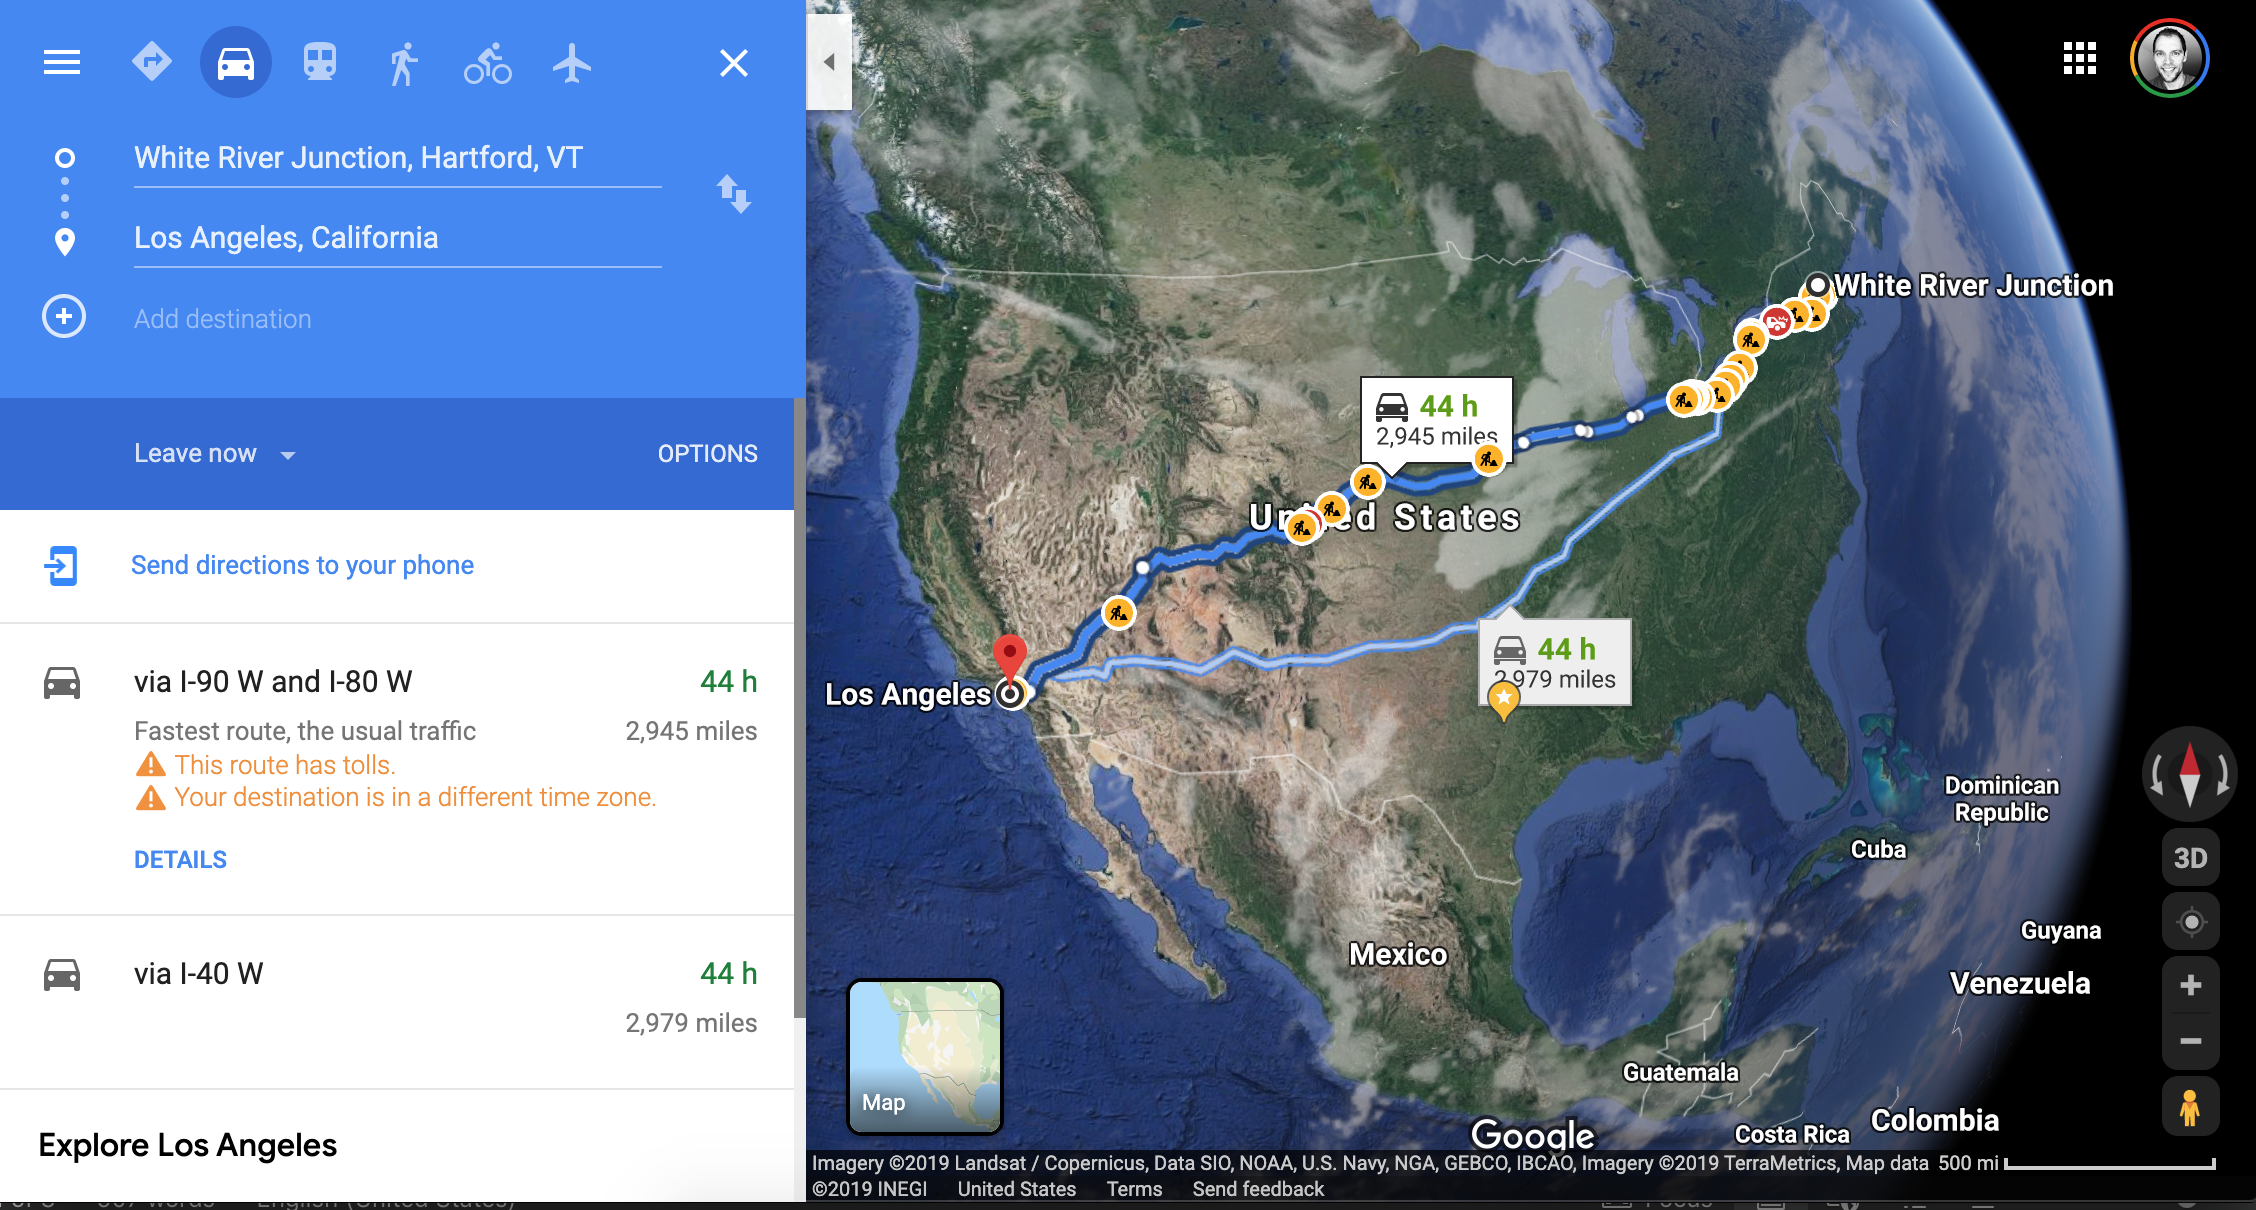 Google Maps result for driving from White River Junction, VT, to Los Angeles, CA